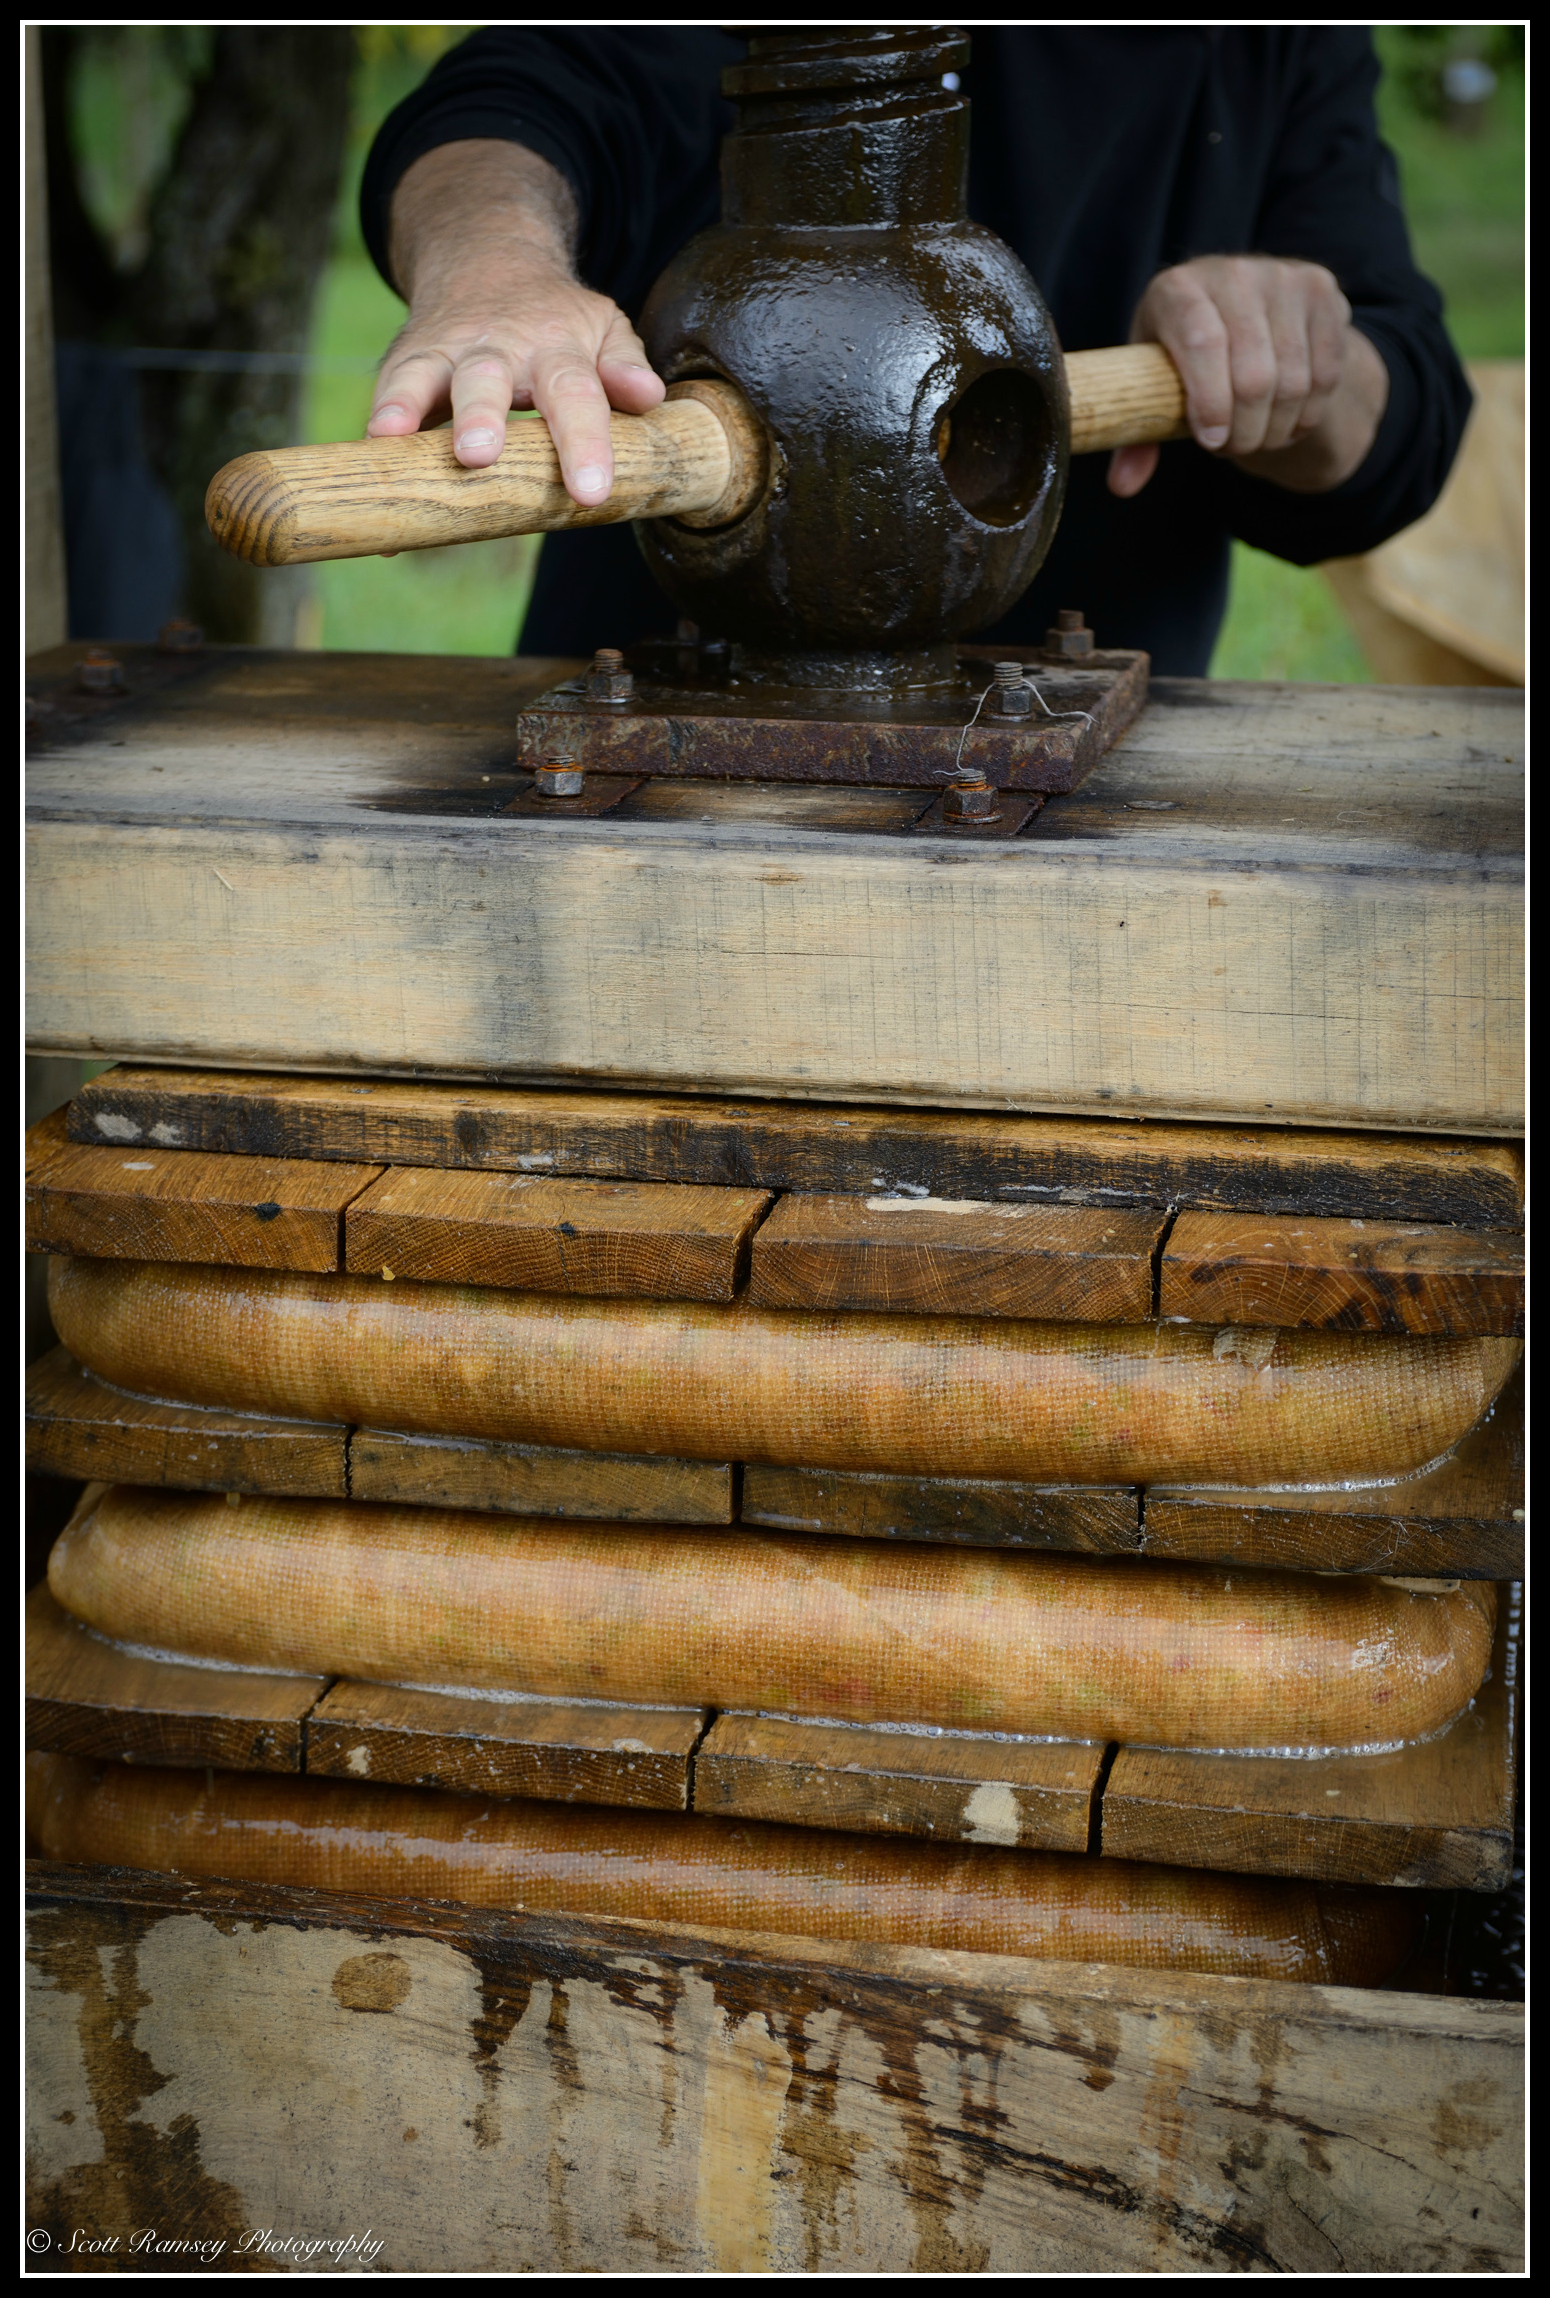 Hands turn a large screw squashing the apples wrapped in hessian cloth on a  traditional rack and cloth oak cider press.